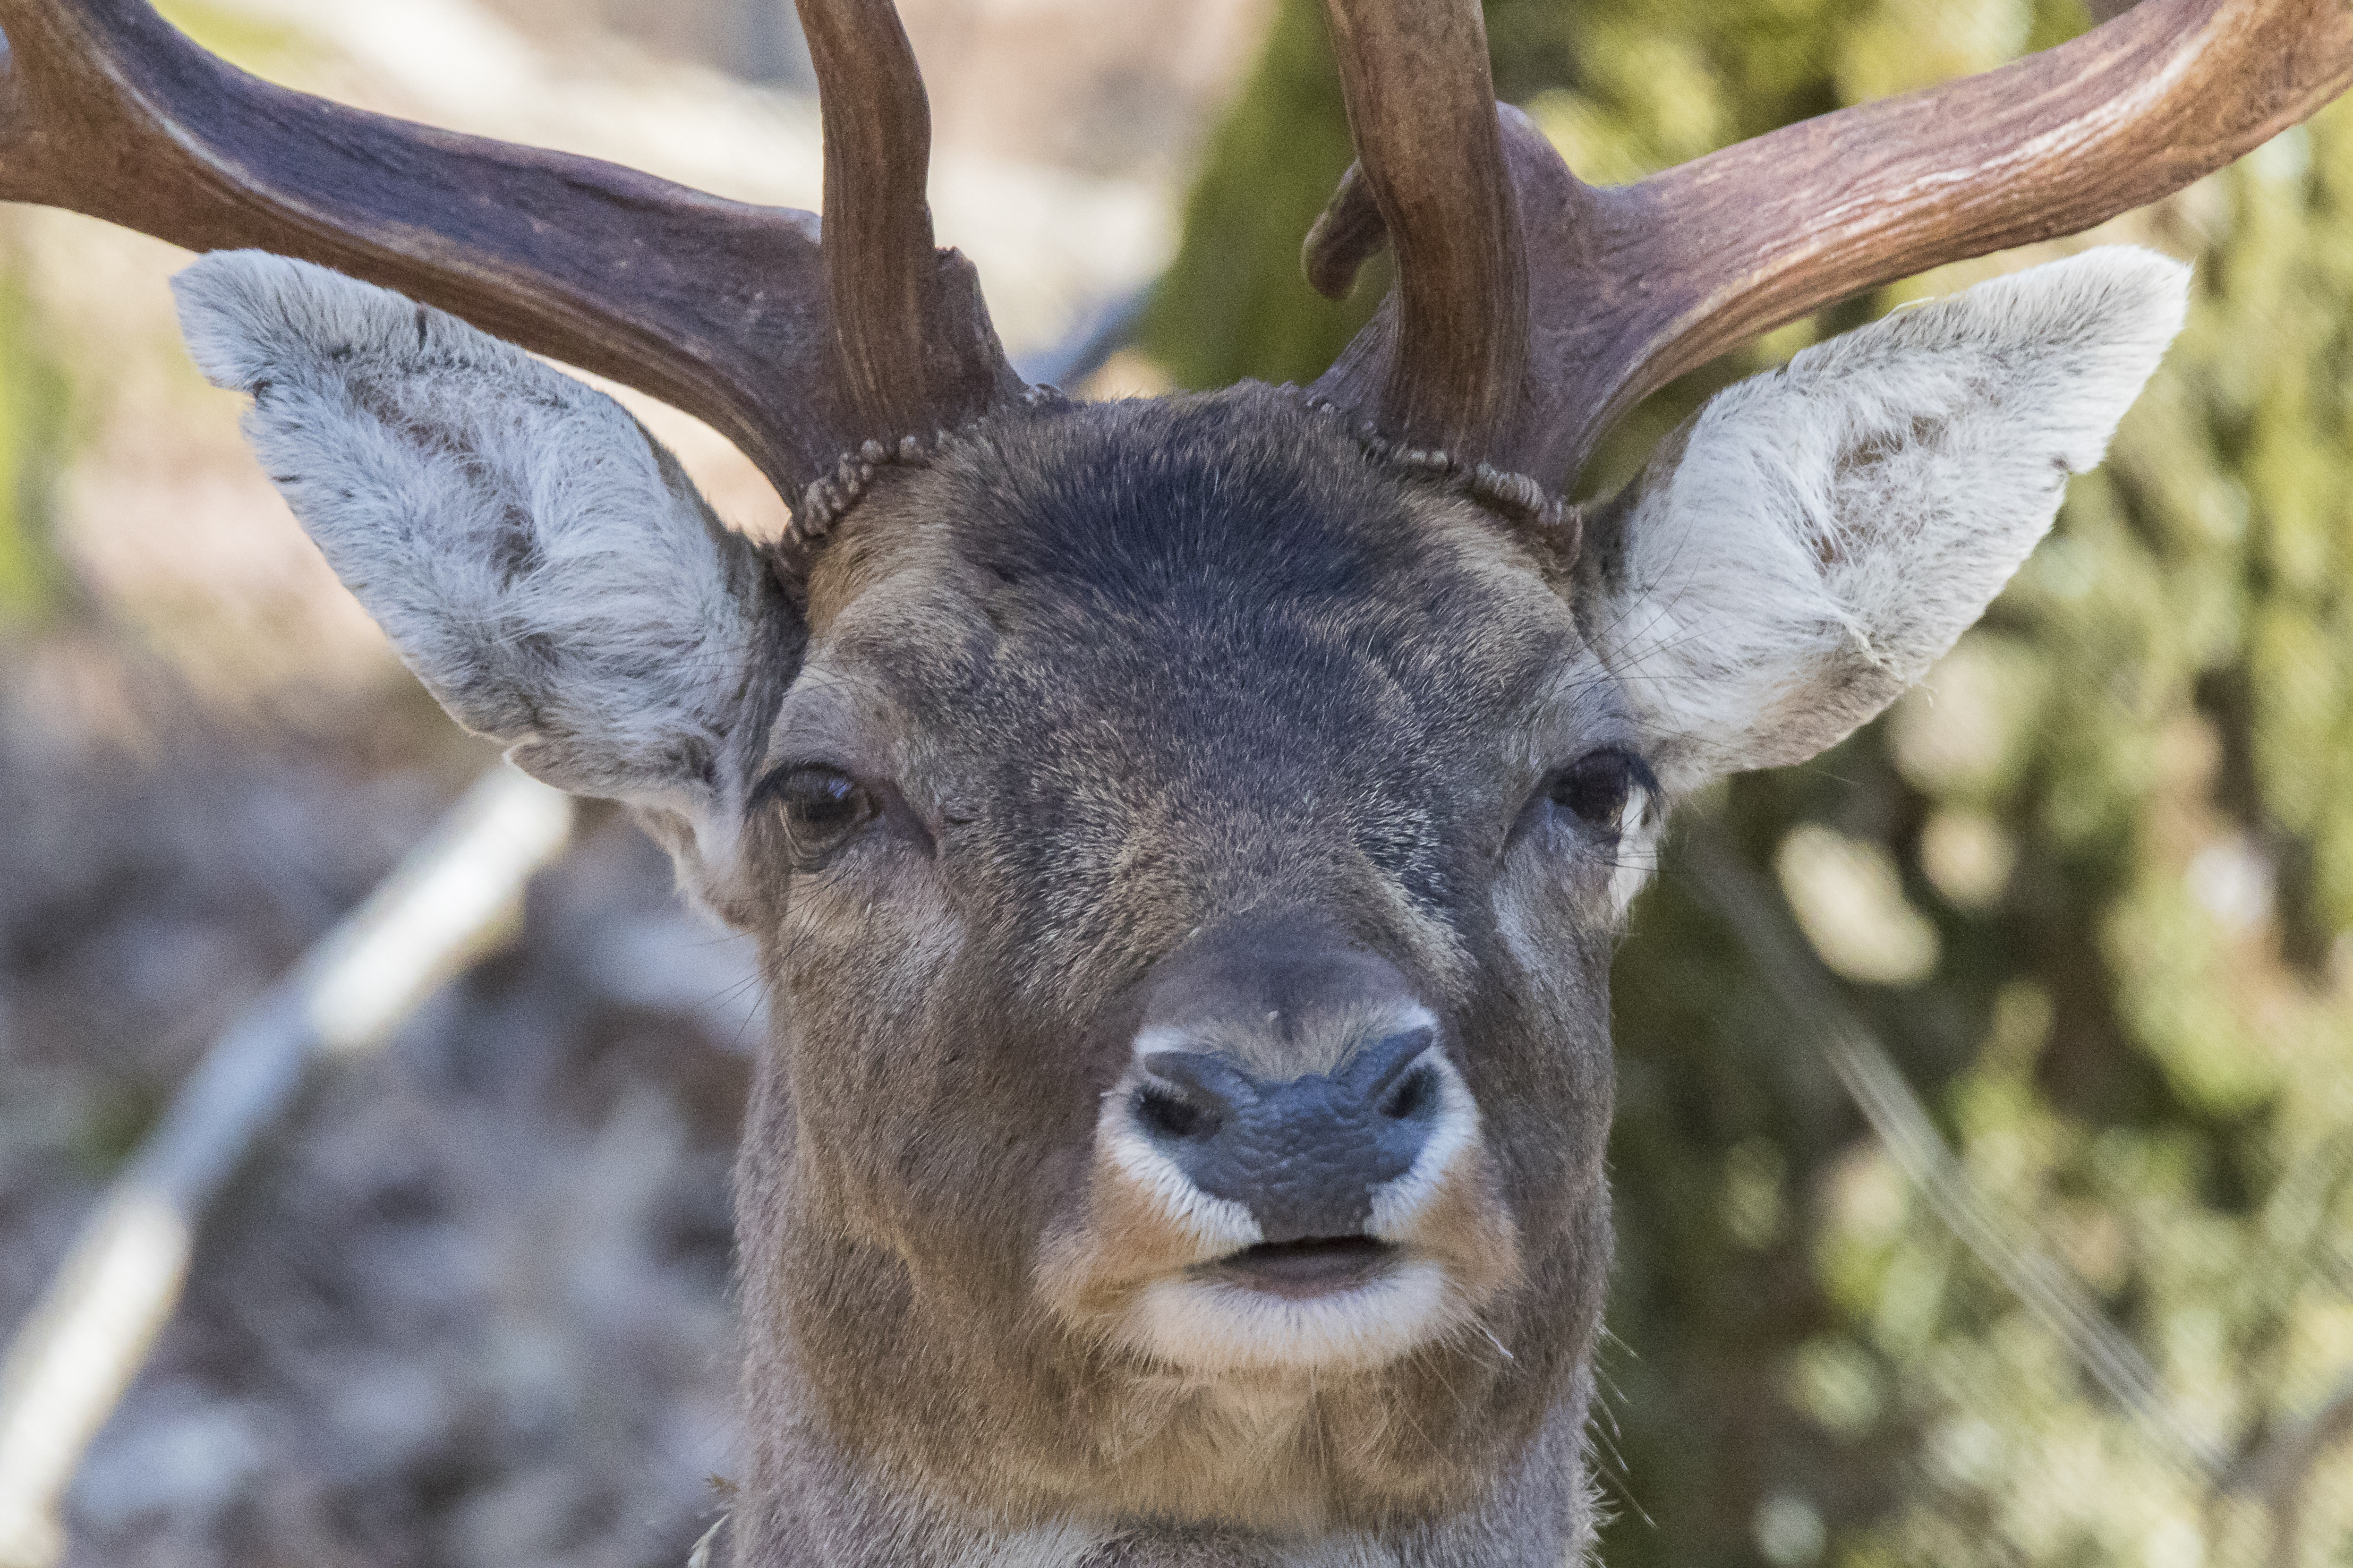 67189 download wallpaper Animals, Deer, Doe, Fallow Deer, Muzzle, Horns screensavers and pictures for free